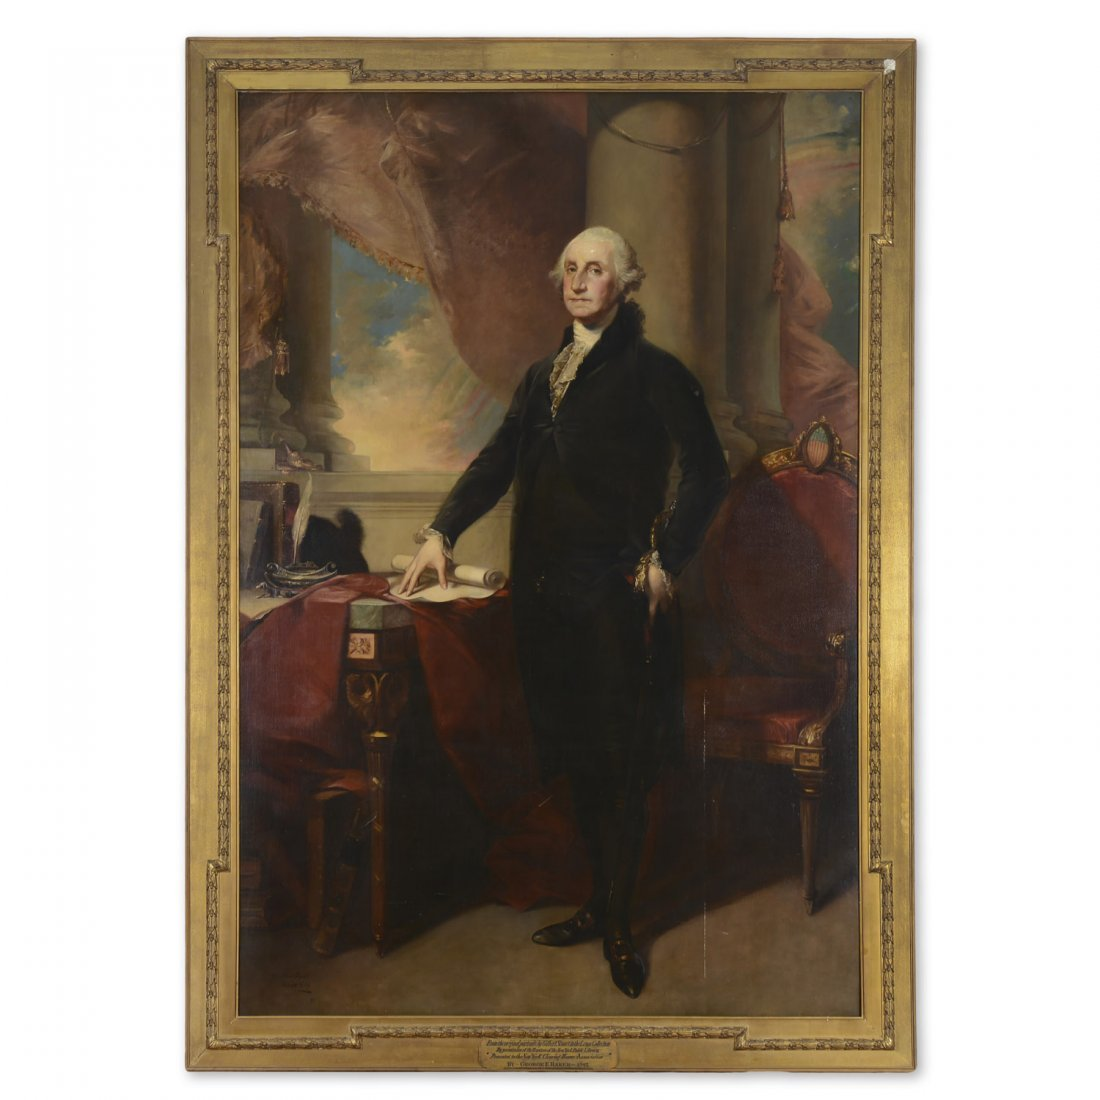 After Gilbert Stuart, monumental painting